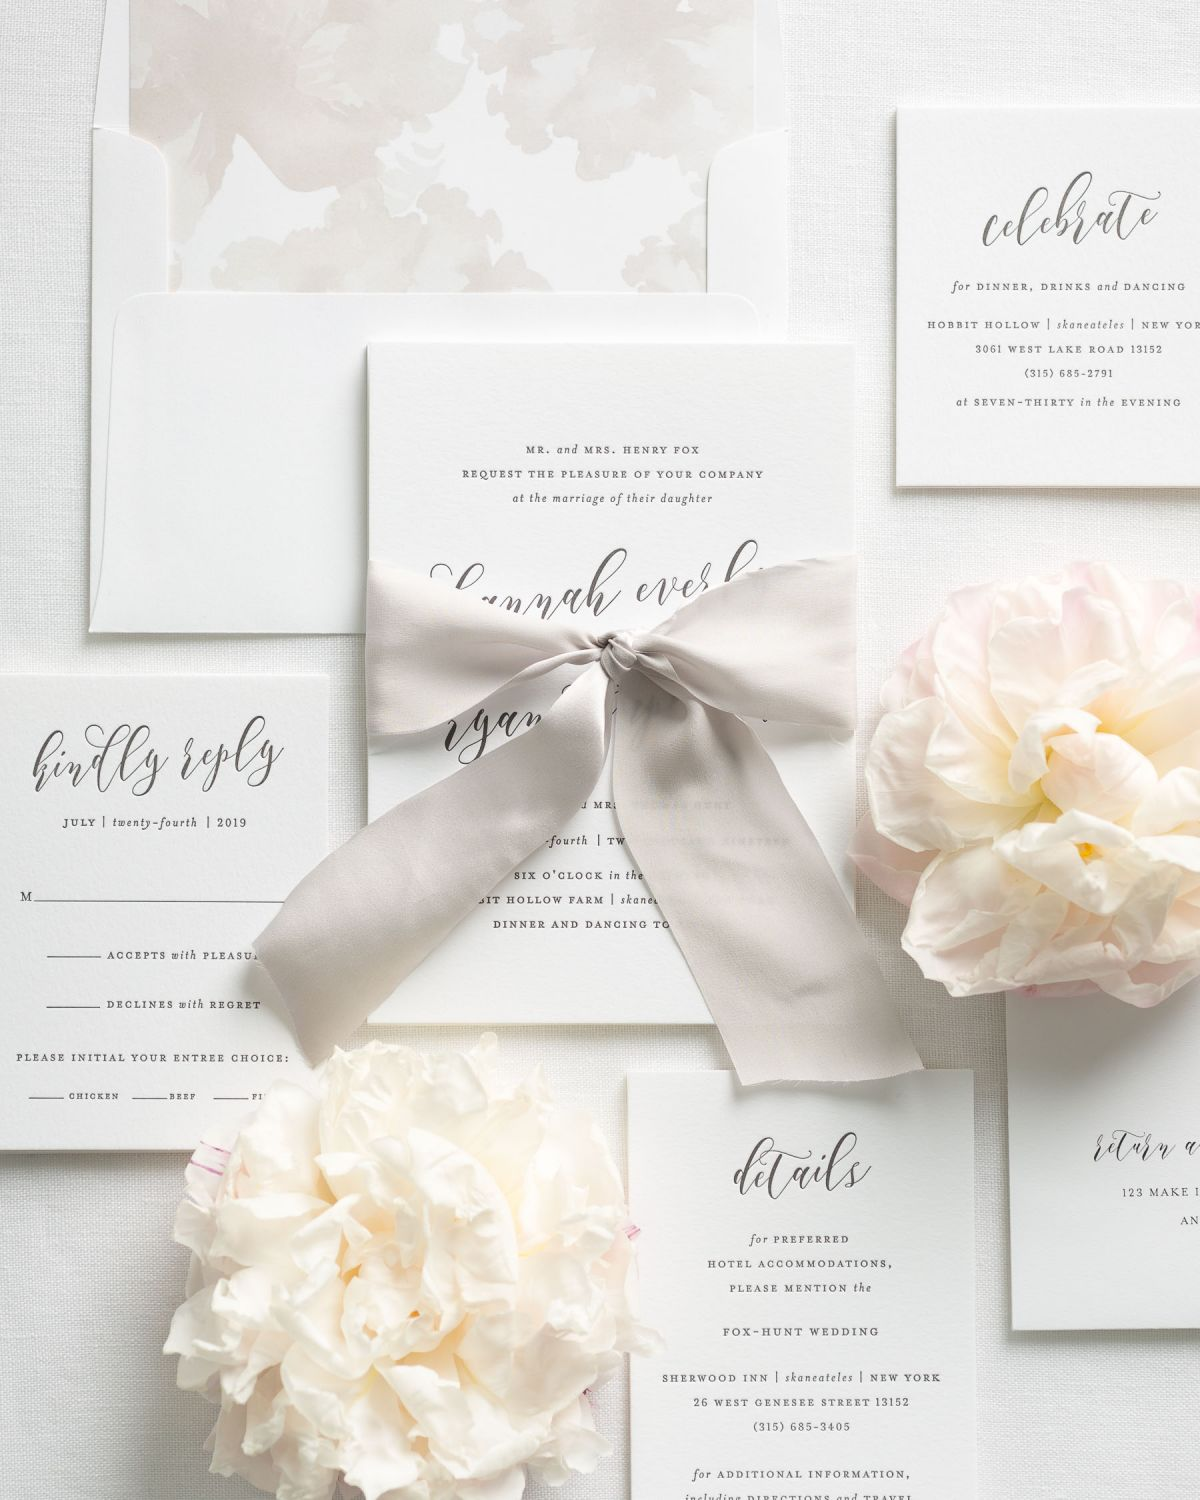 Ribbon Wedding Invitation Suite with Letterpress Printing